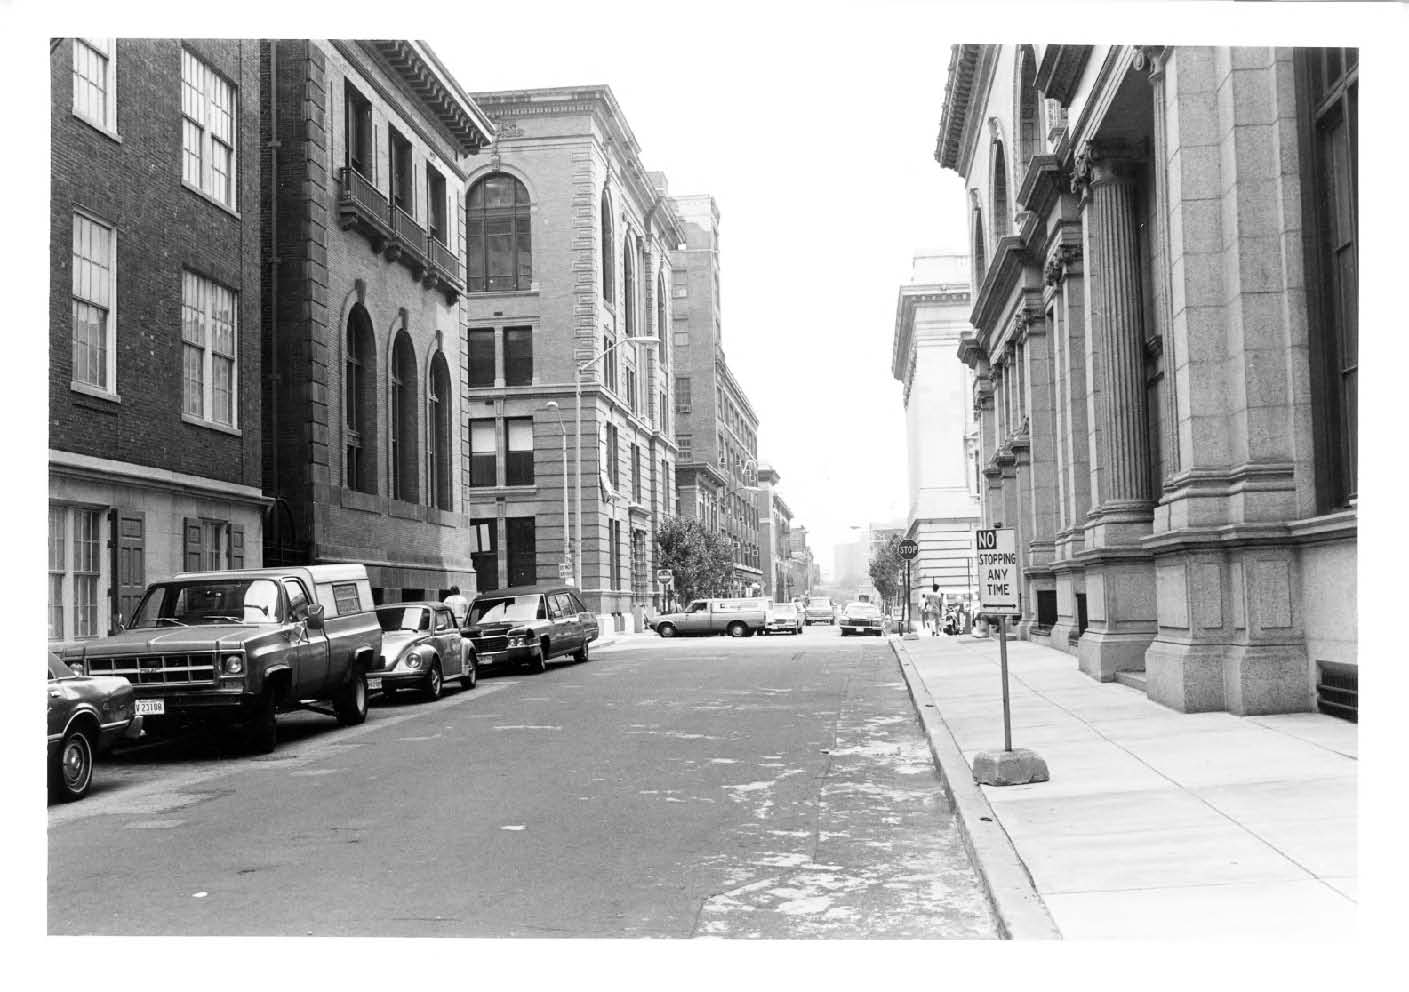 Baltimore's Business and Government Historic District (11/25/87)